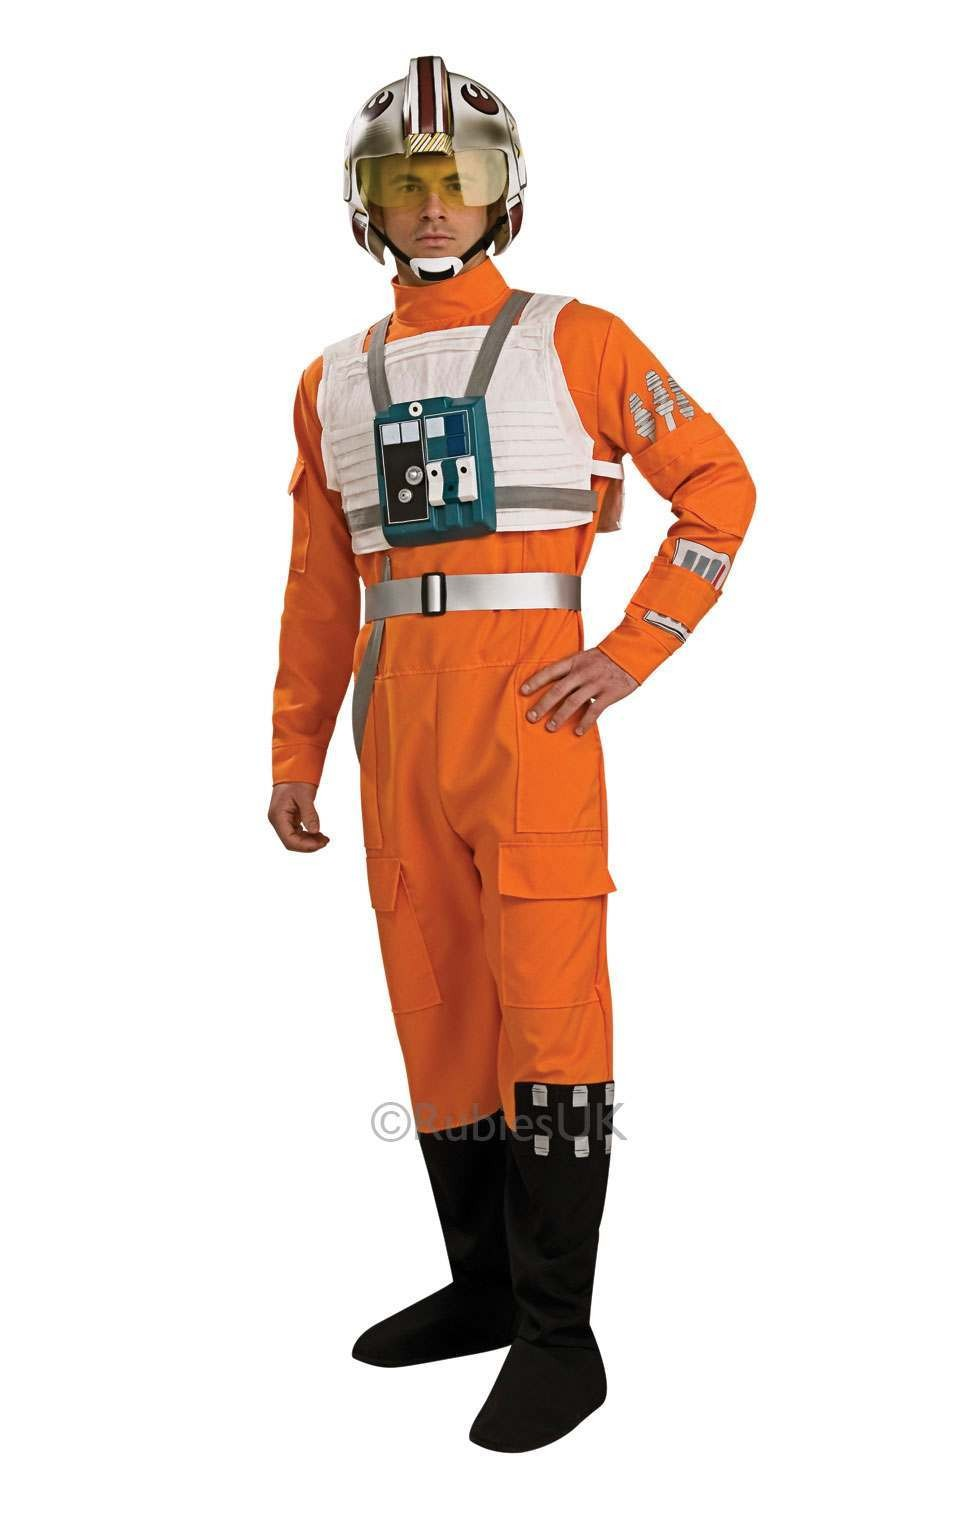 X-Wing Fighter Pilot Star Wars Costume